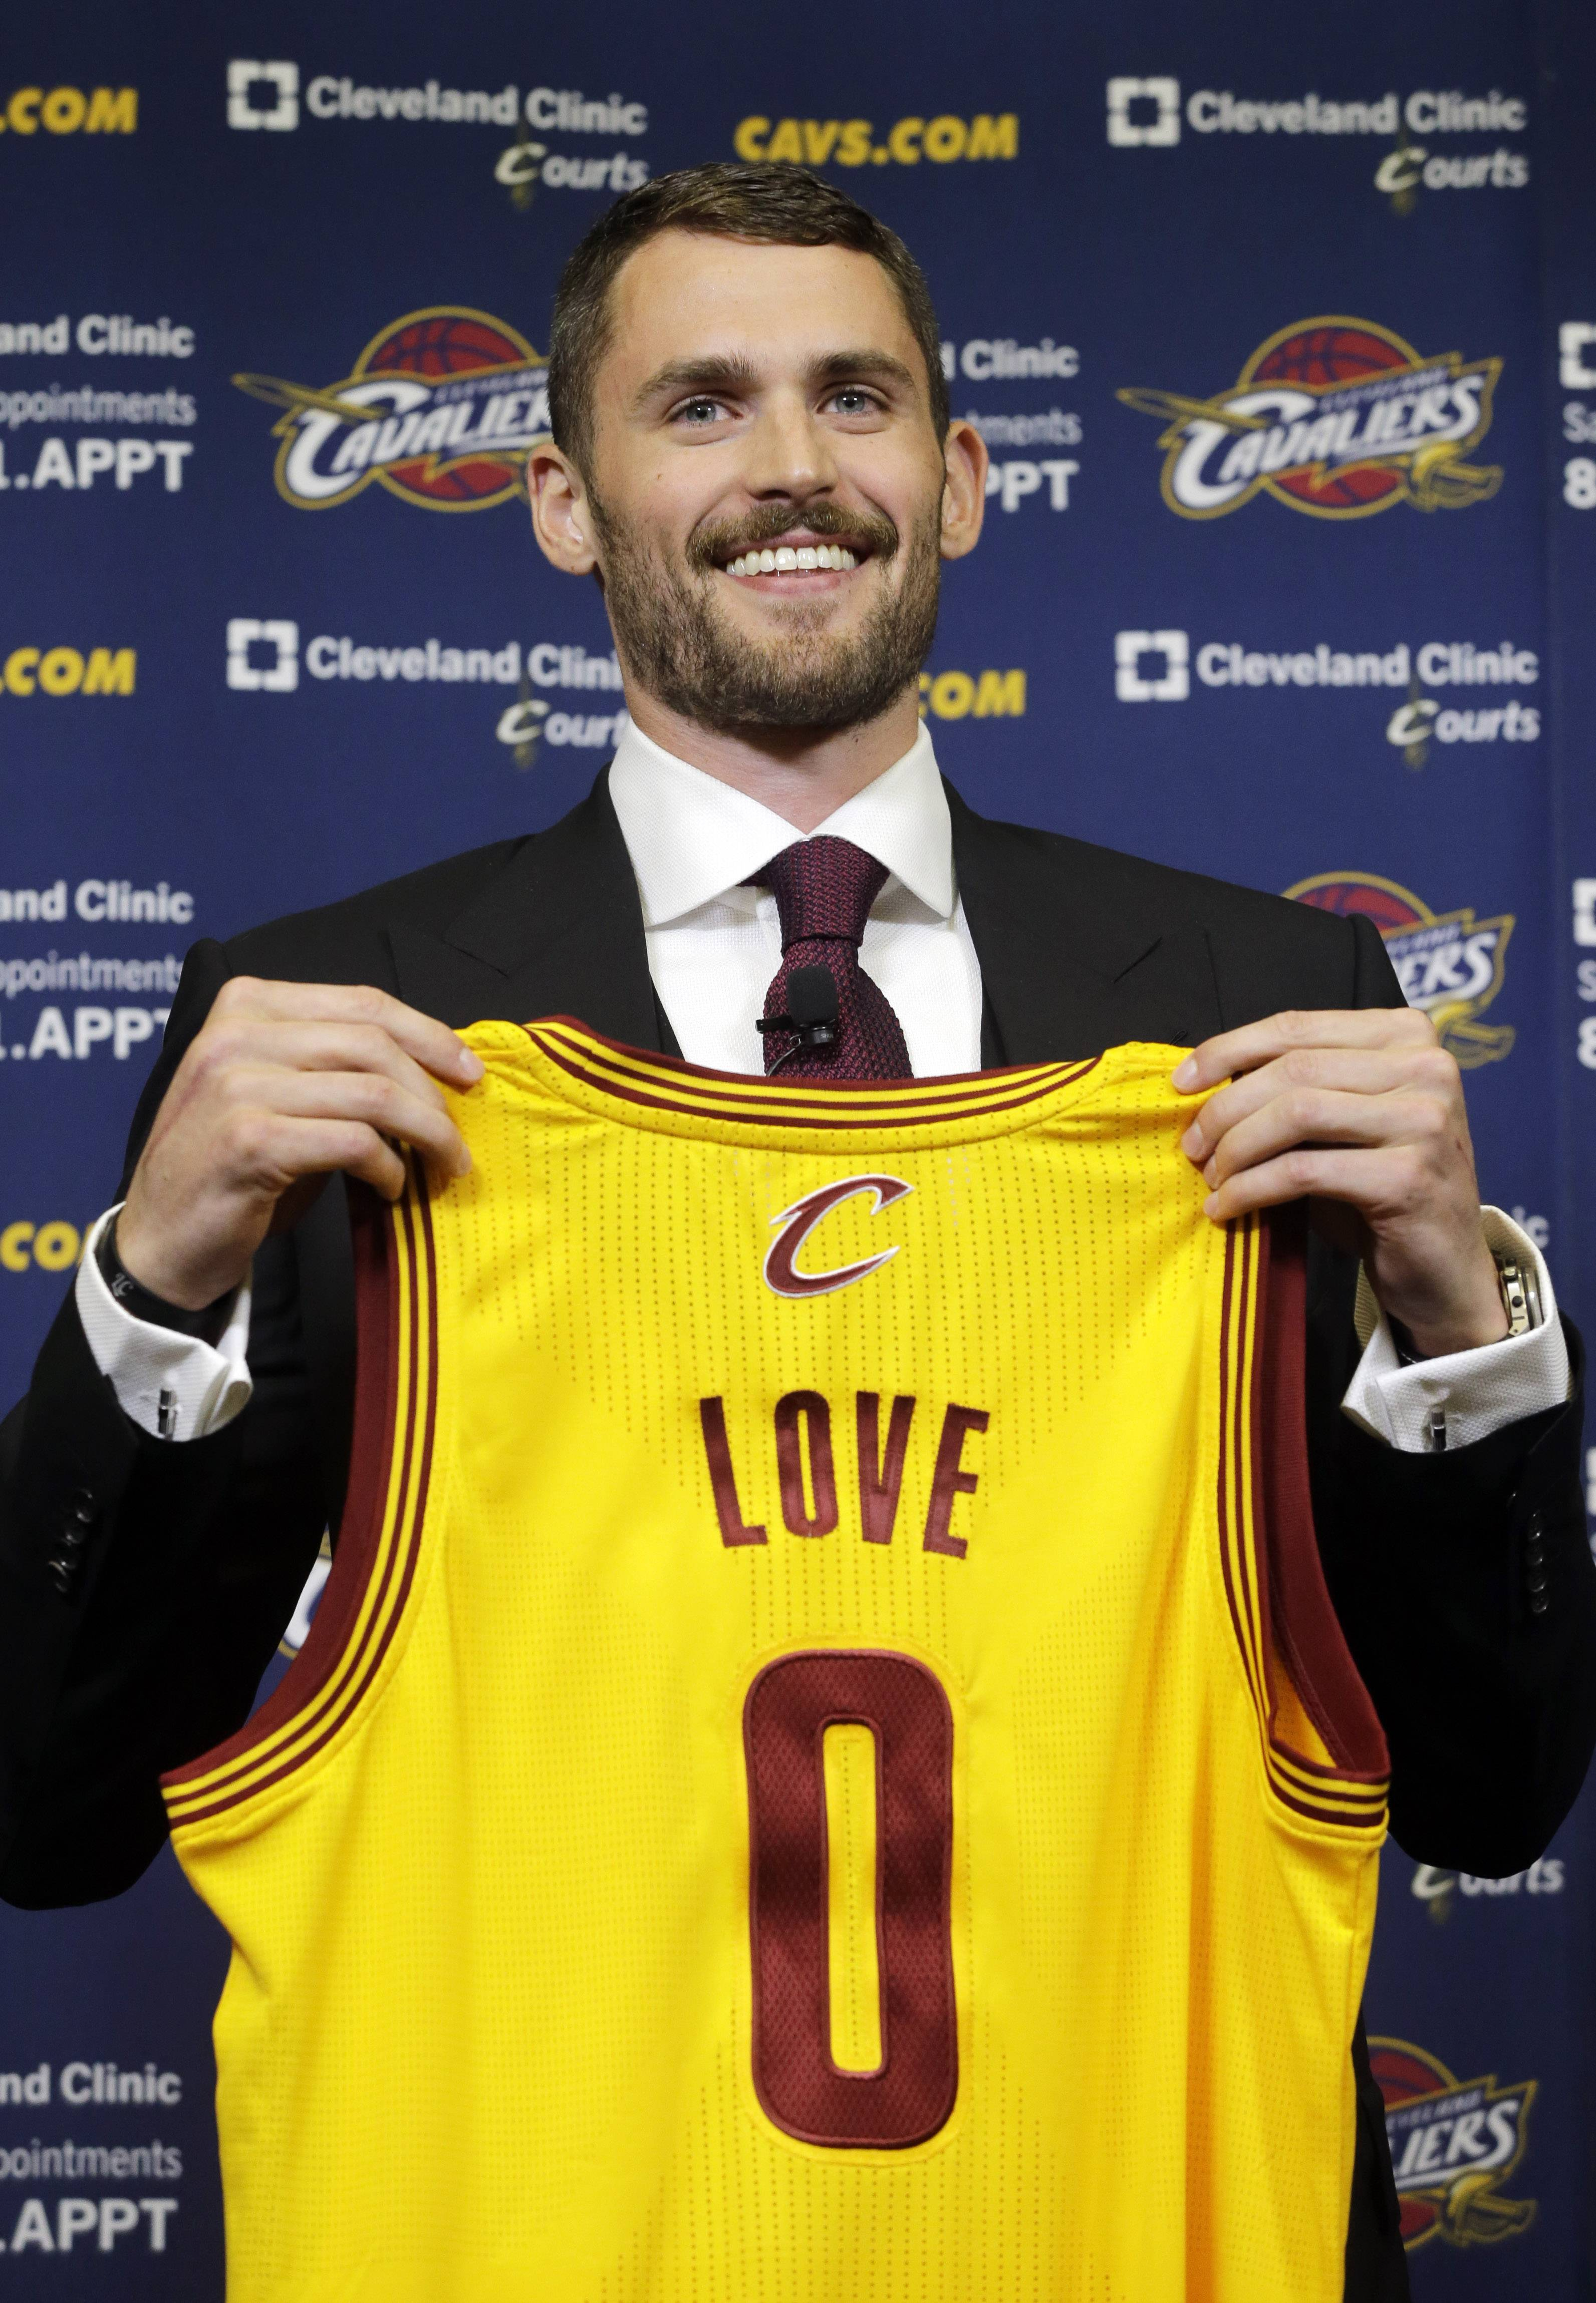 Kevin Love, now a member of the Cleveland Cavaliers, has never taken a team to the NBA playoffs.